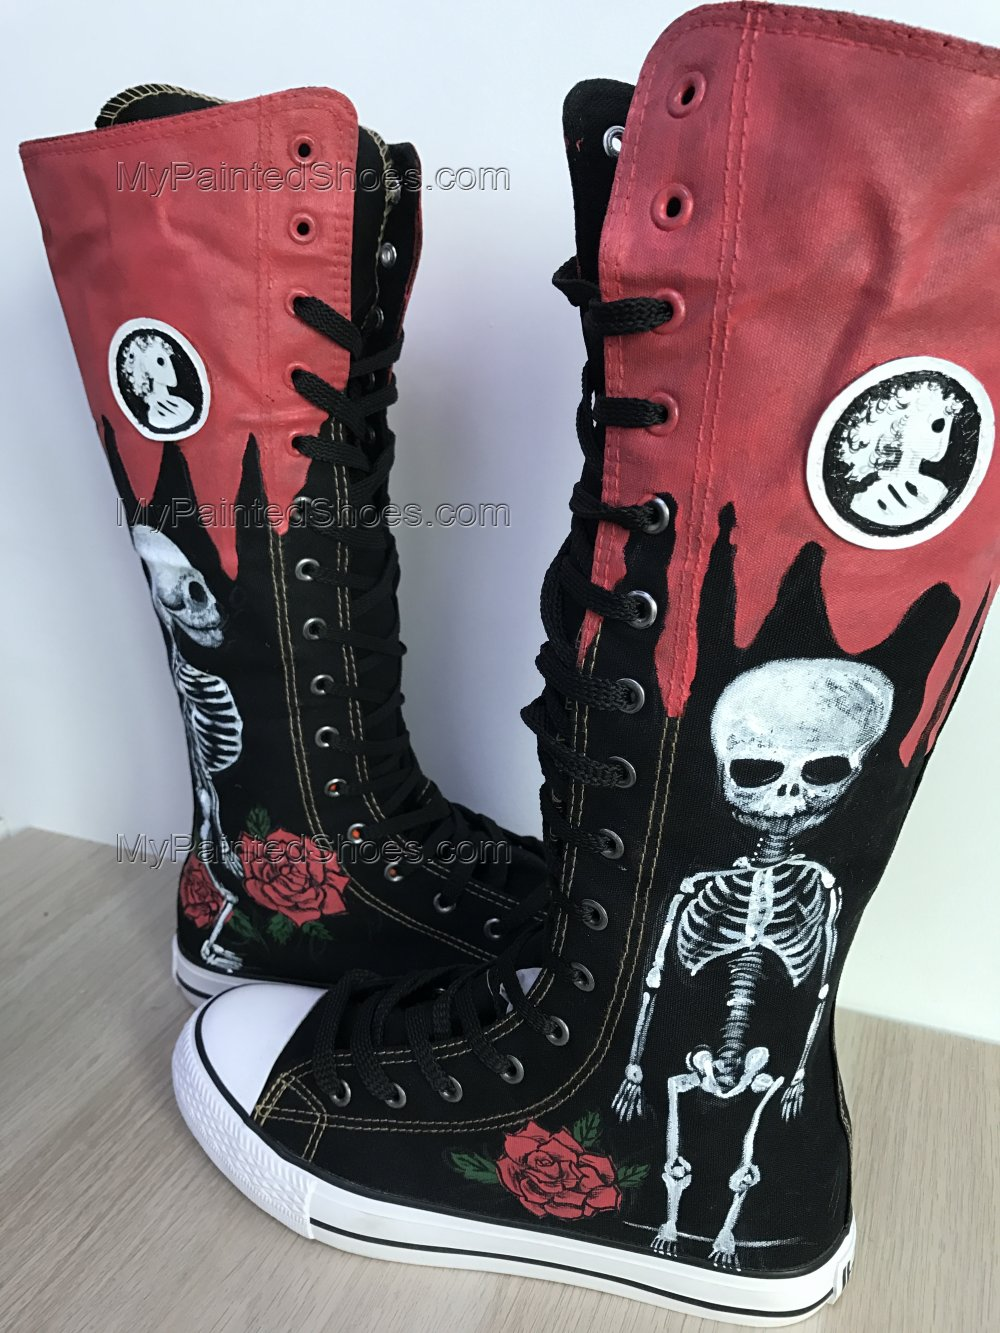 Skull Shoes Skull Boots Customised Shoes Hi Tops Shoes Custom Pa-1